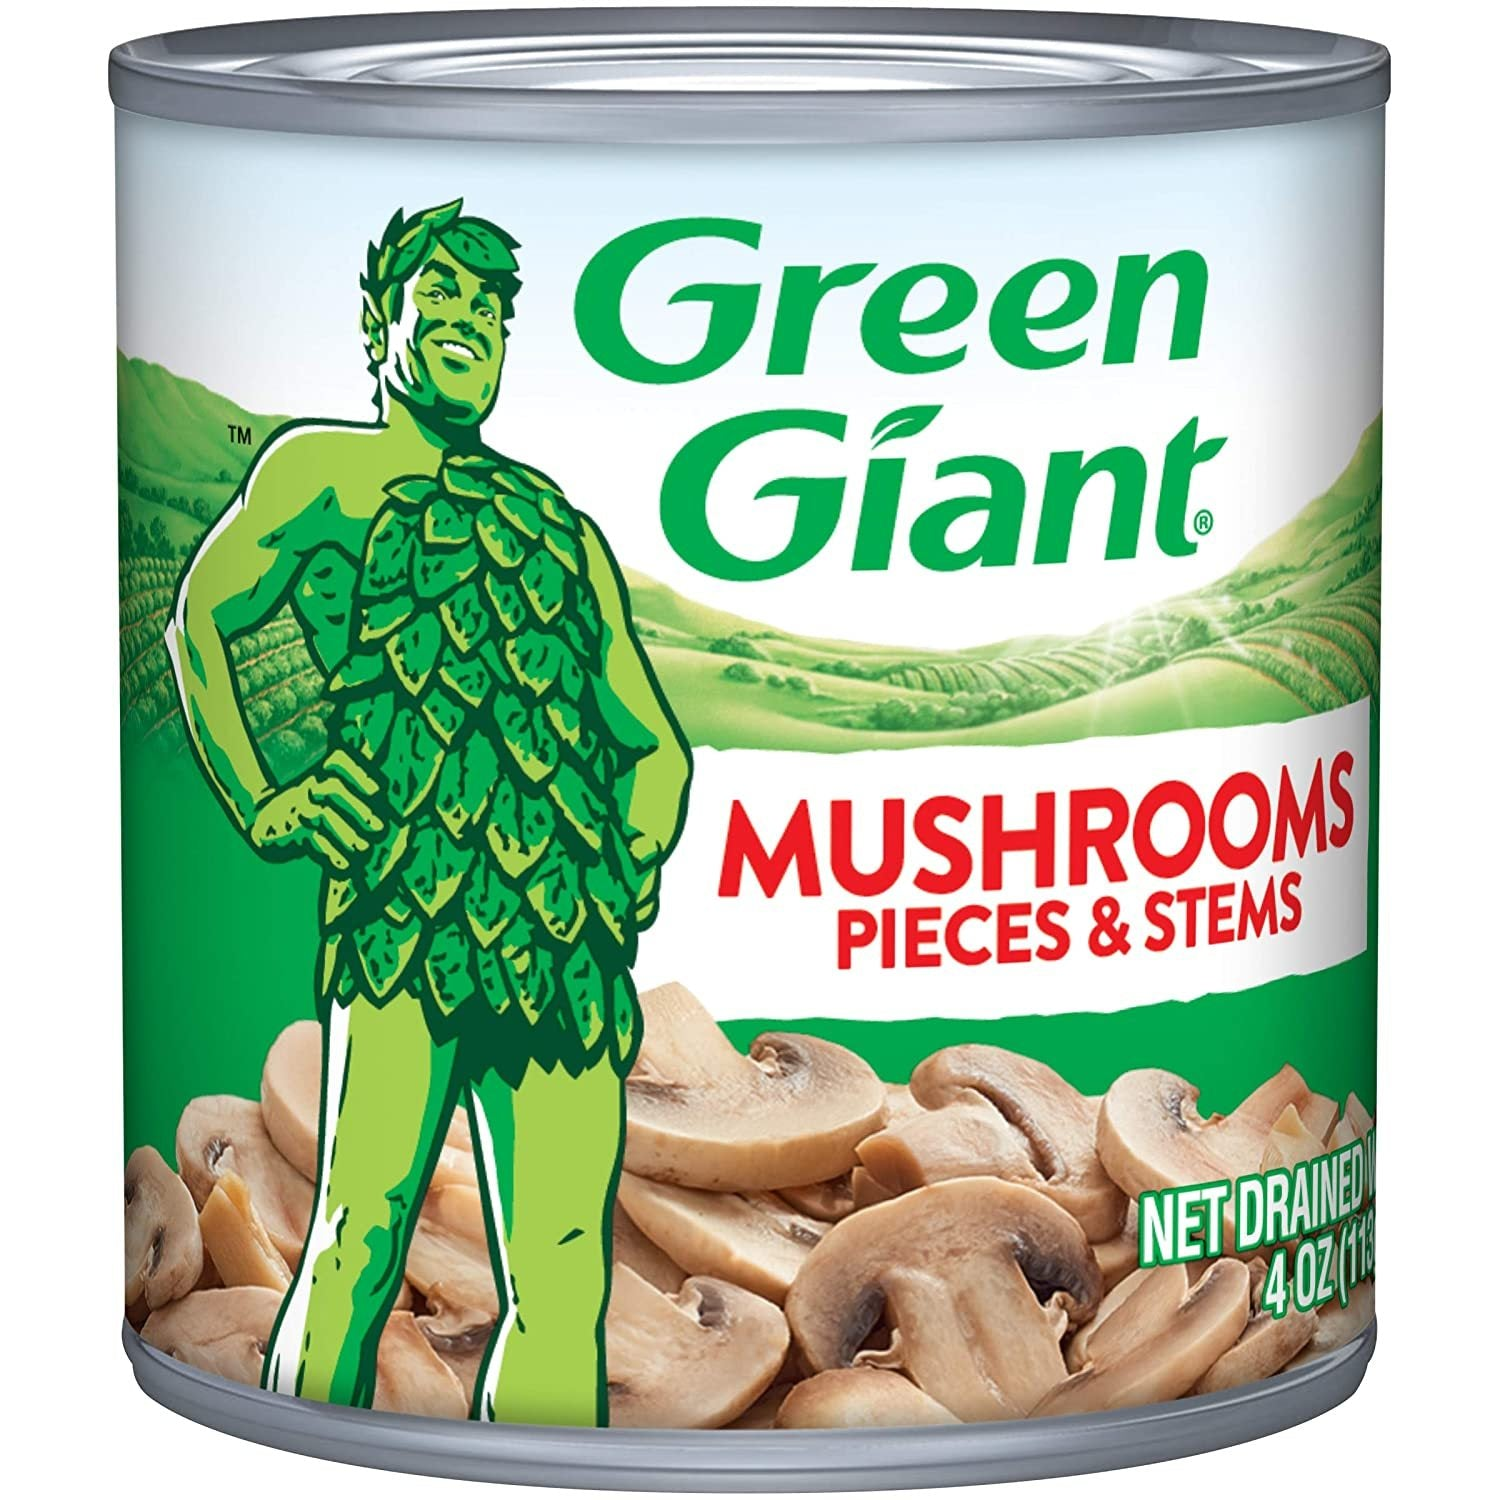 stl>Green Giant Mushroom Pieces and Stems - 1 can - 14oz